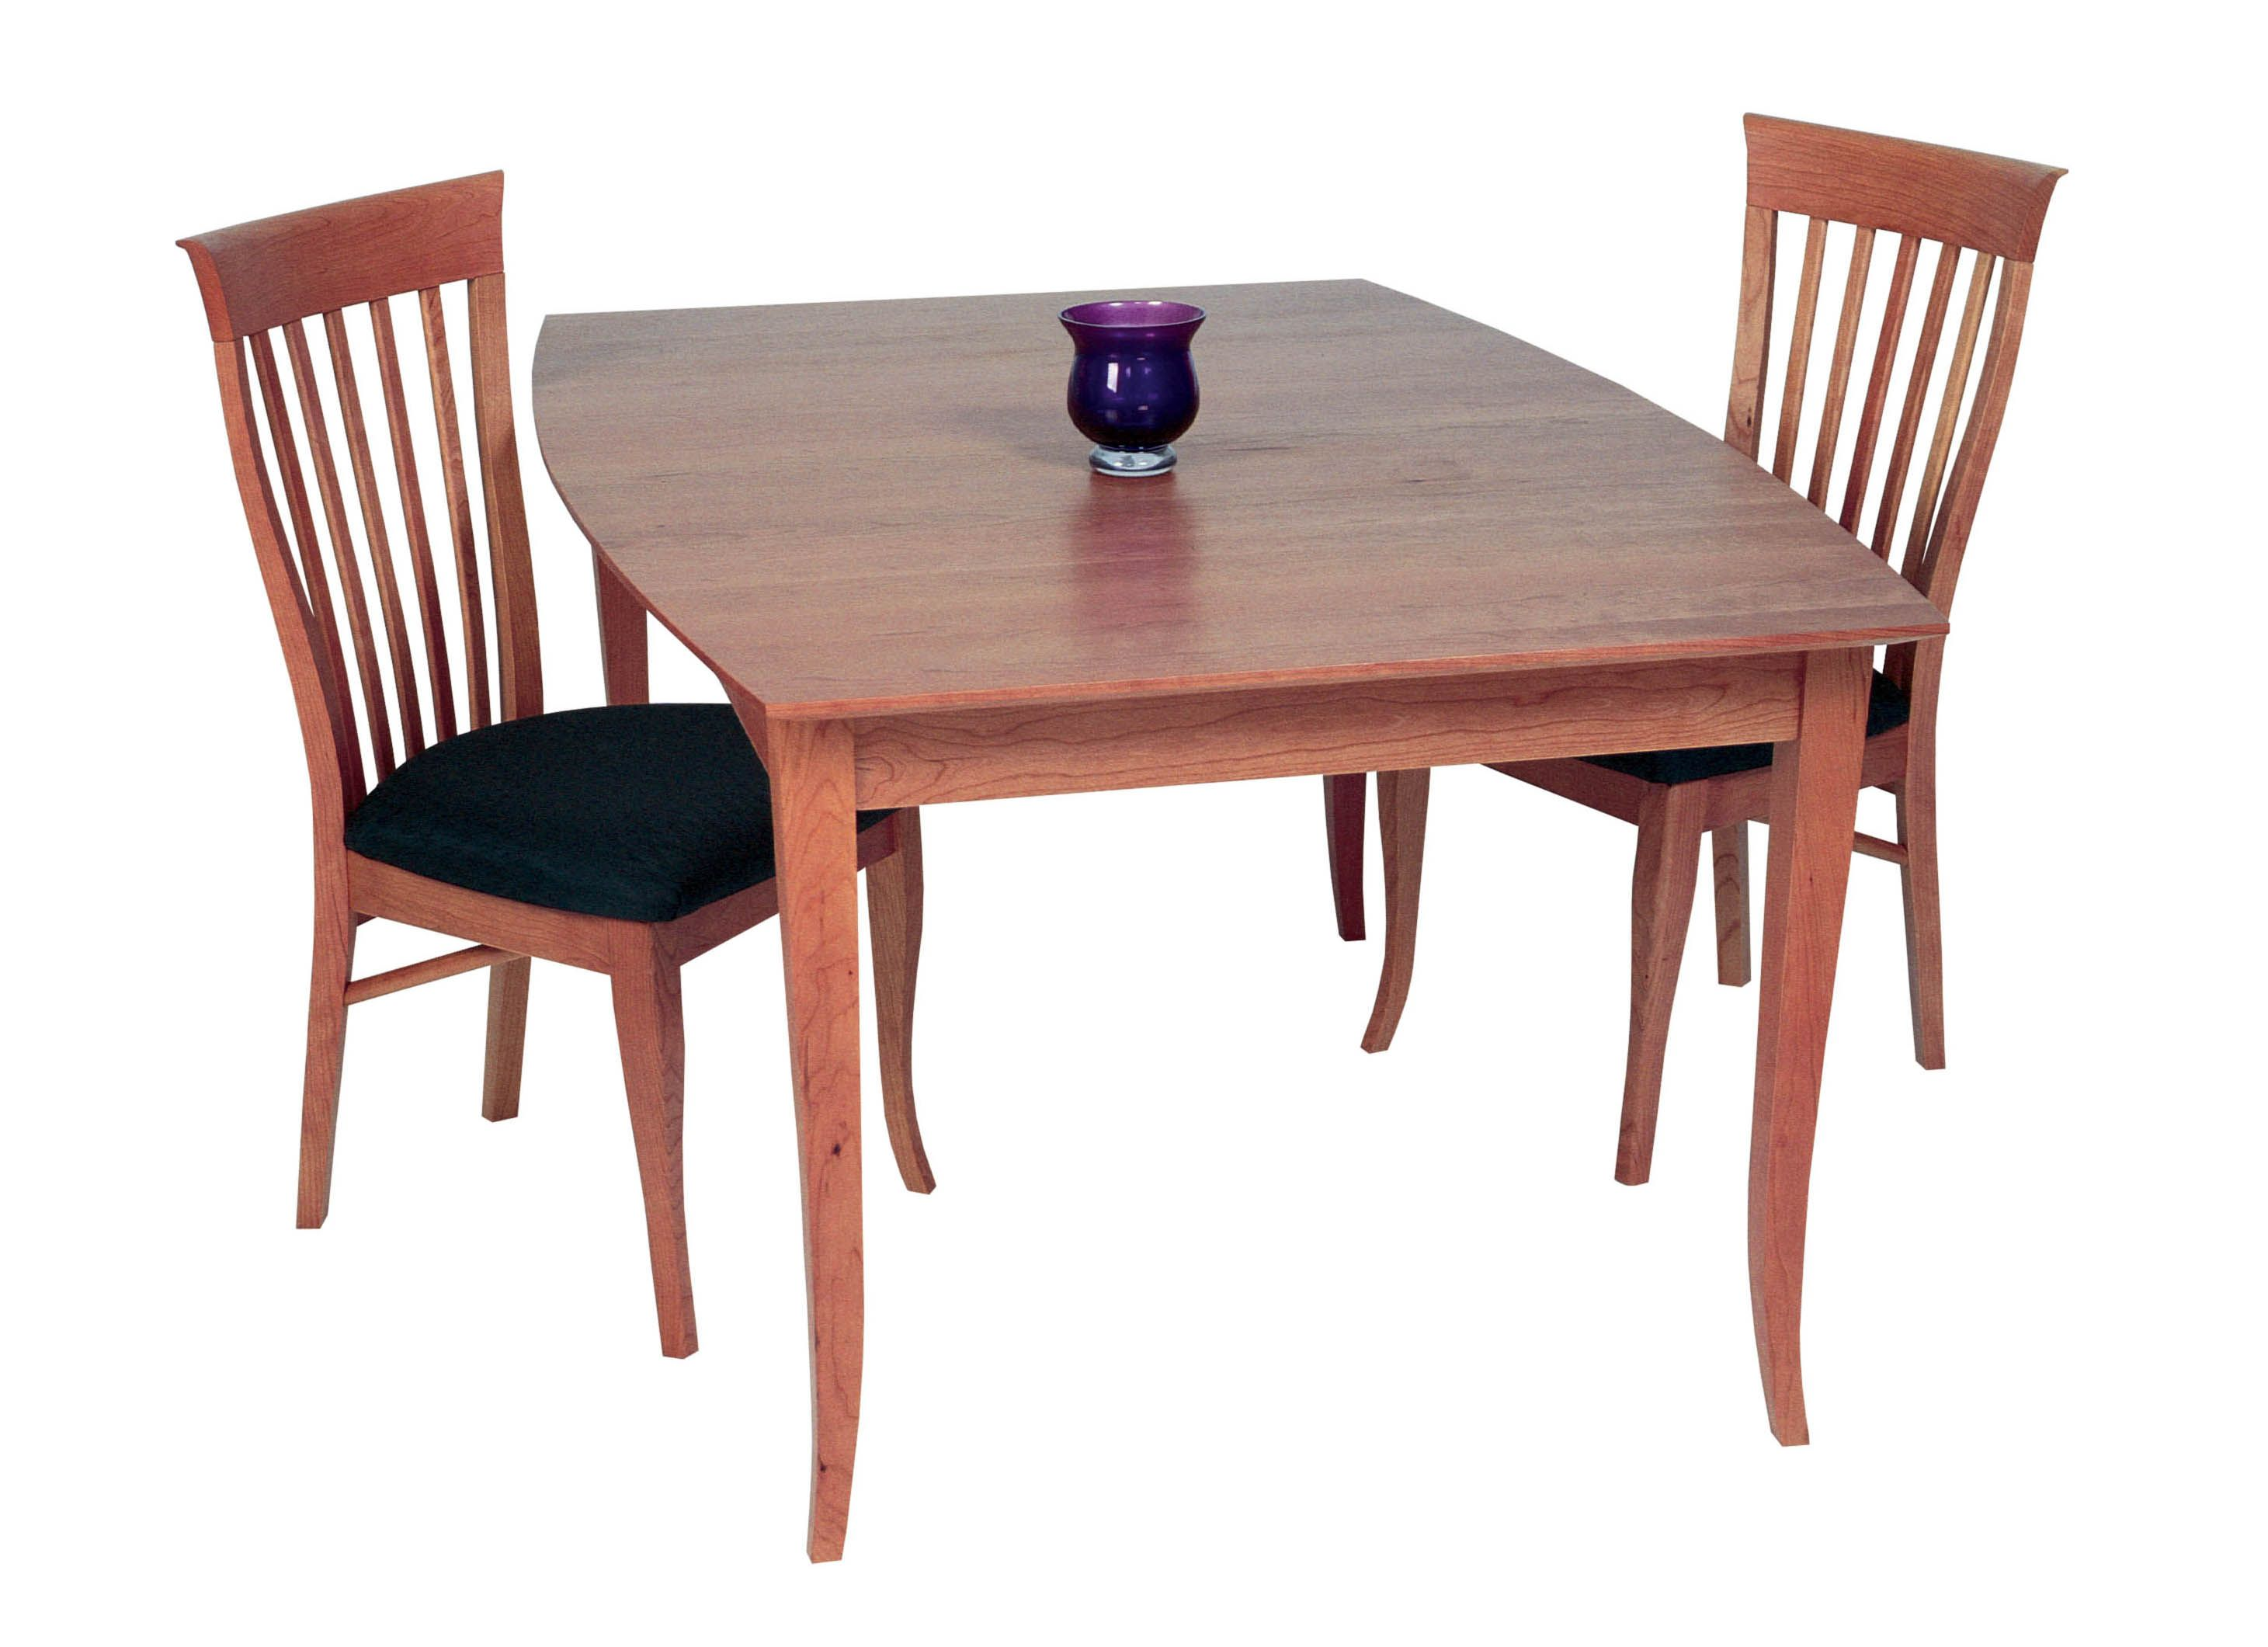 Solid Cherry Boat Shaped Table With Flare Legs Wood Dining Room